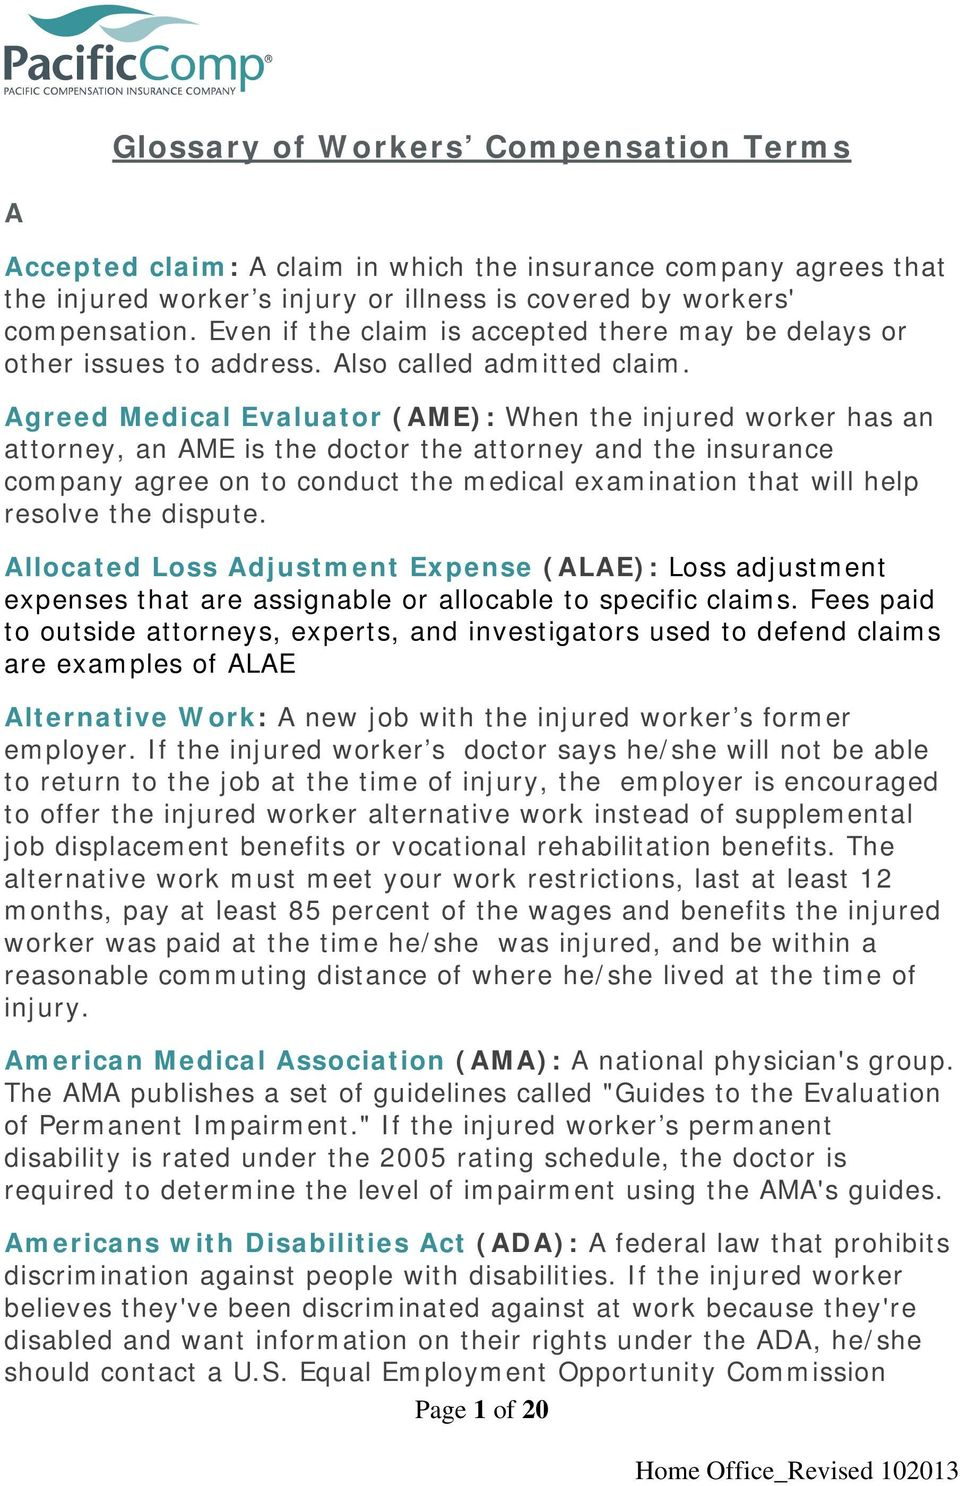 Agreed Medical Evaluator (AME): When the injured worker has an attorney, an AME is the doctor the attorney and the insurance company agree on to conduct the medical examination that will help resolve